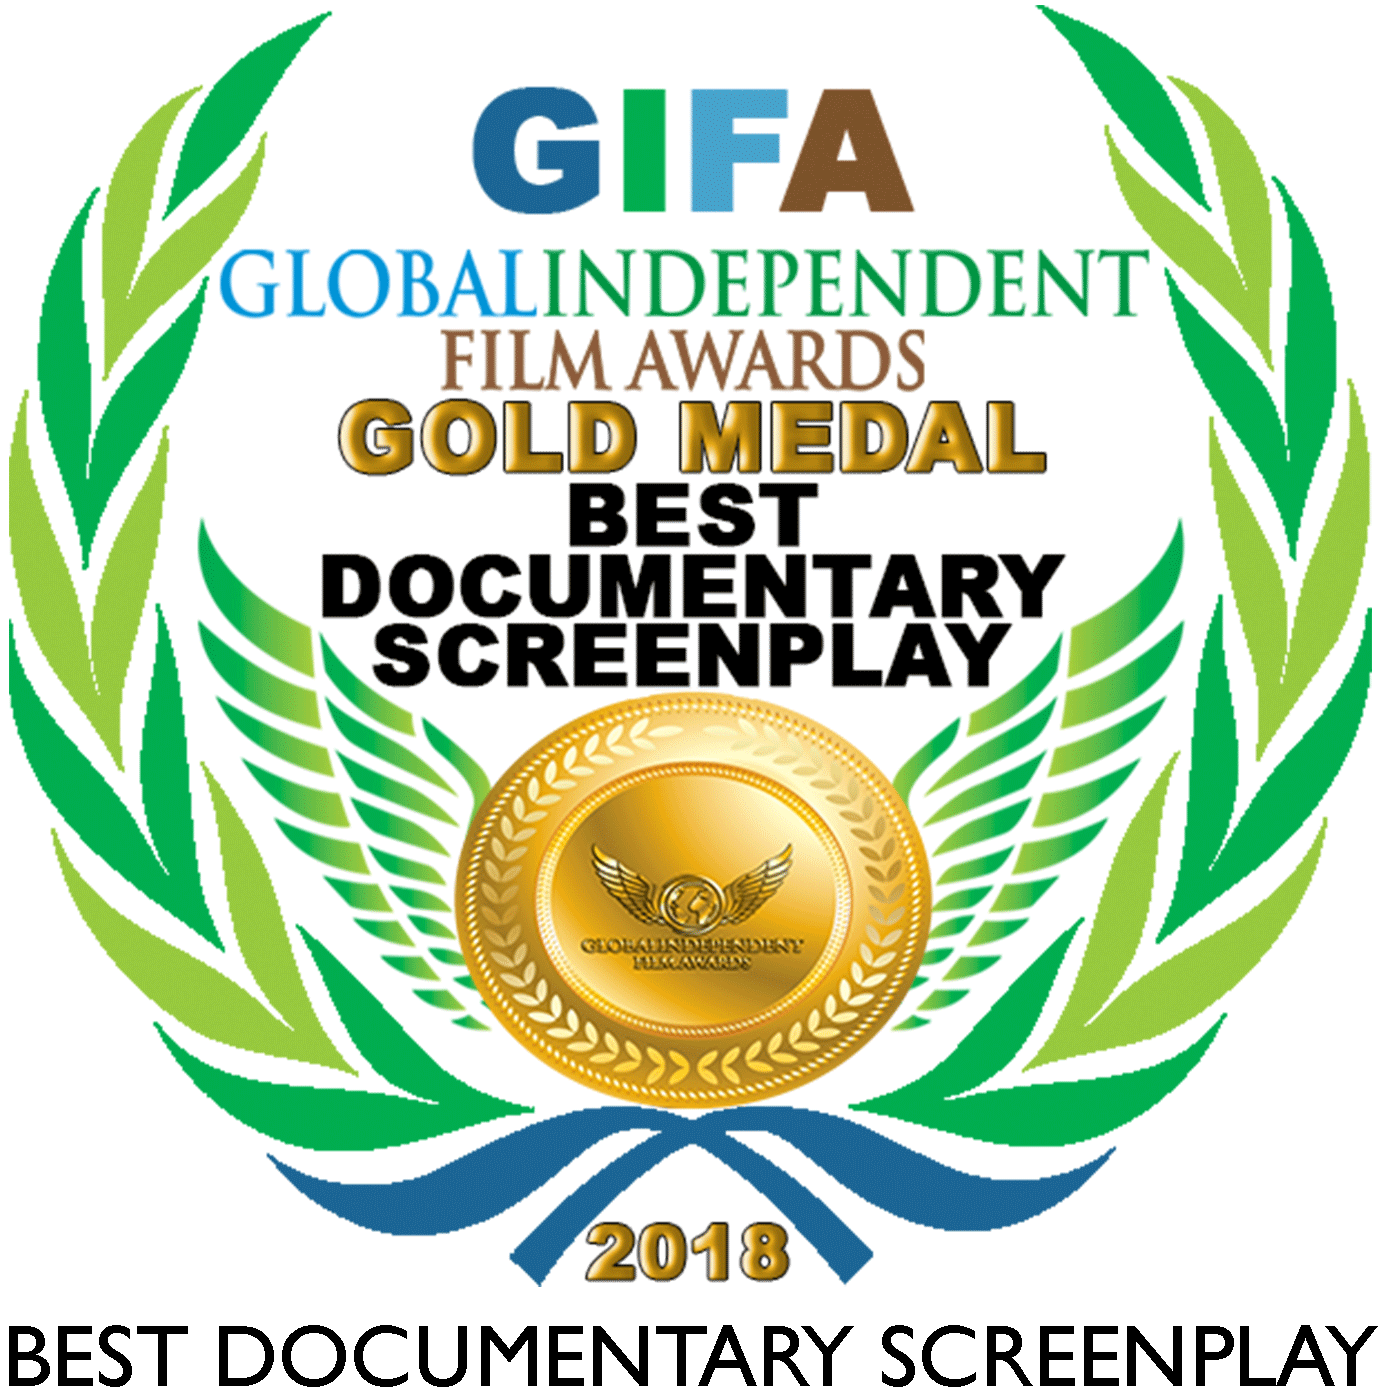 Sofia Wellman - Whats Love Got To Do With It - Film by Sofia Wellman - GIFA - Gold Medal - Best Documentary Screenplay - 2018